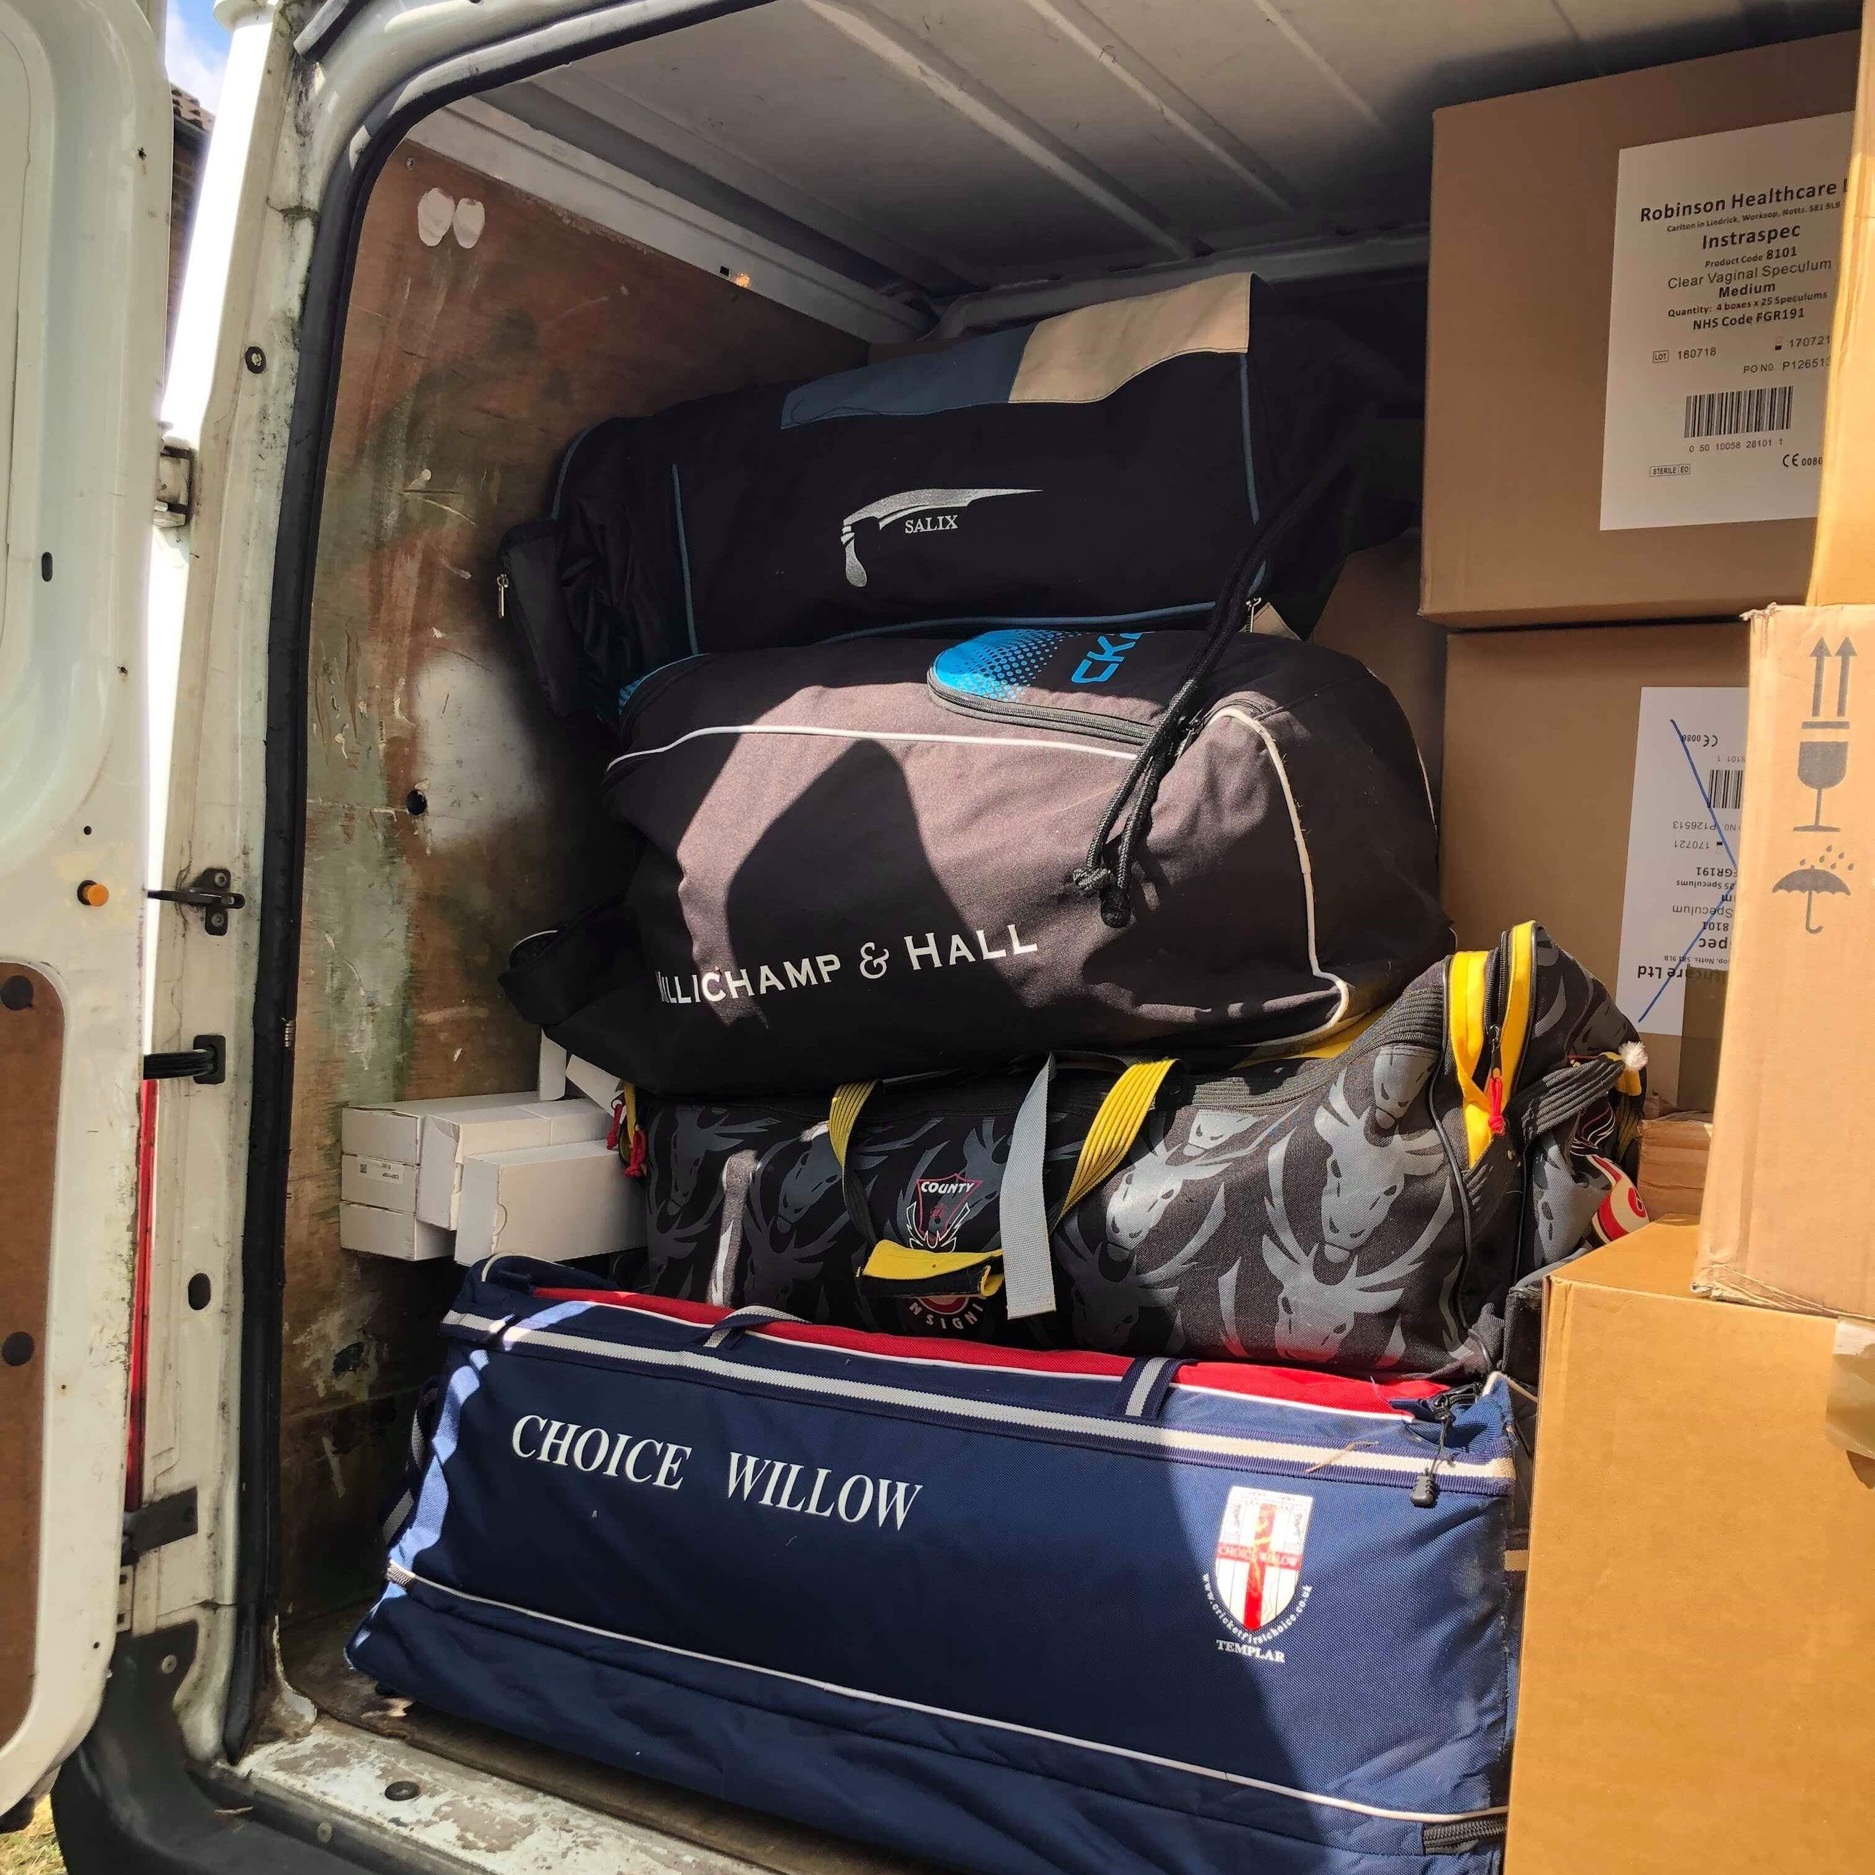 Our awesome 'Van Man' - Angus from Herts for Refugees - collected the kit from Sandra to start its journey to Athens. Next stop Mondial shipping where transport costs were generously paid by Julie and our friends at Friends of Refugees Bedfordshire. (Don't you just love a beautiful collaboration 💖)